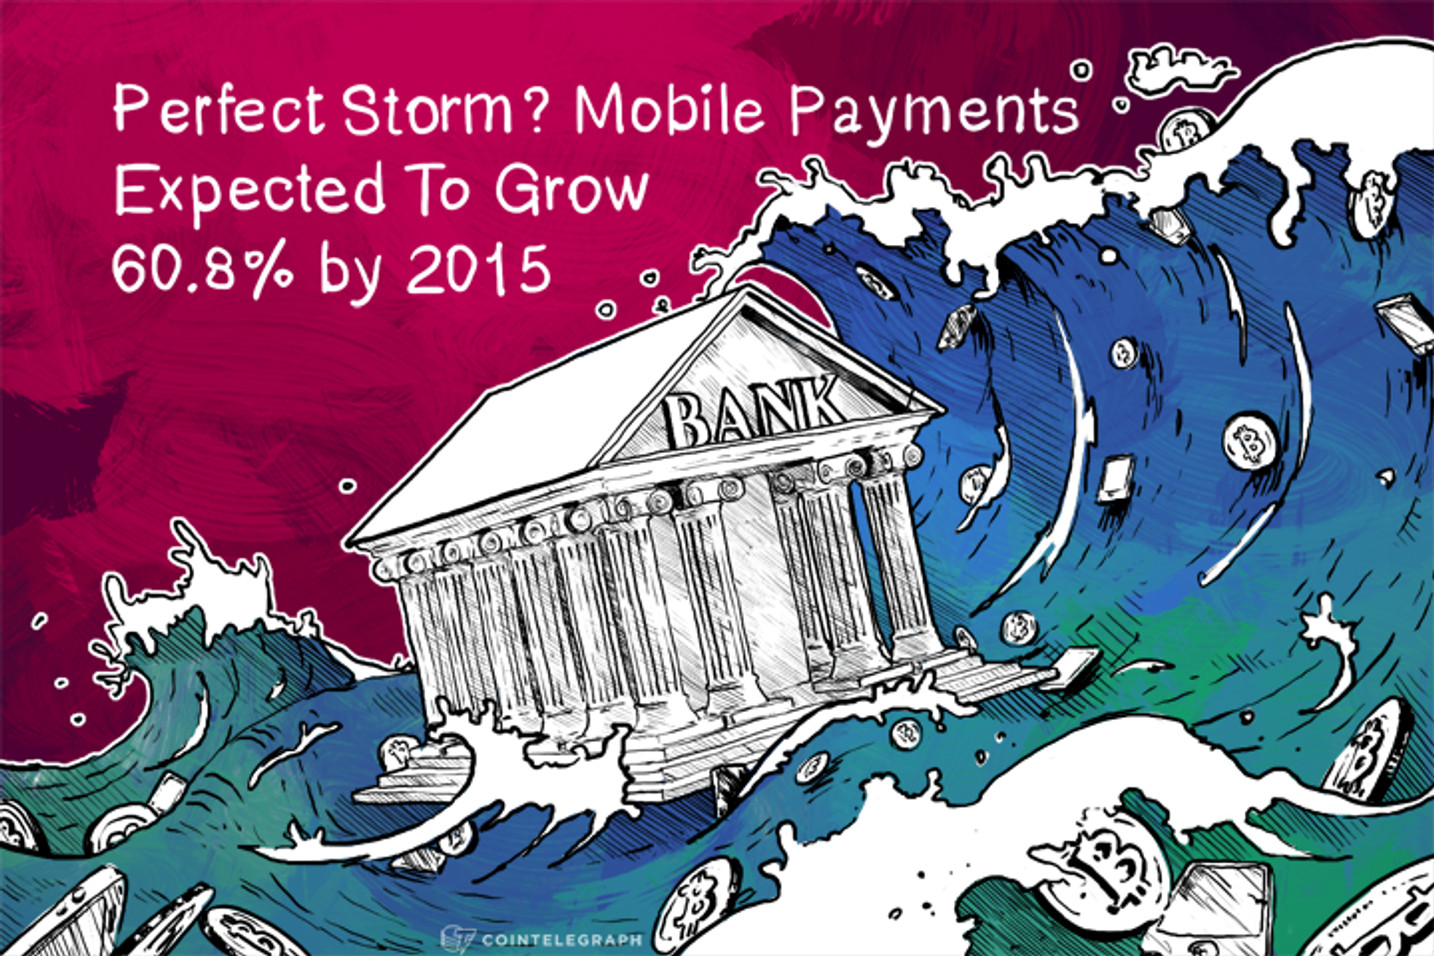 Perfect Storm? Mobile Payments Expected To Grow 60.8% by 2015